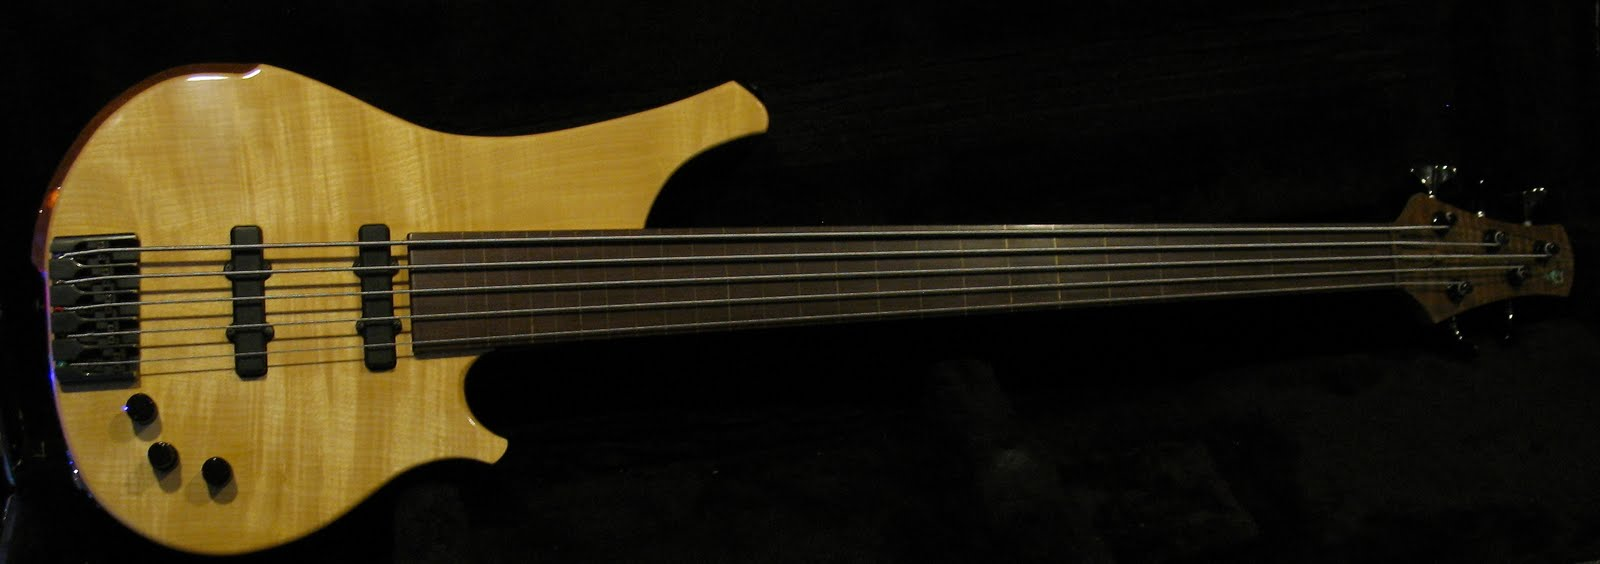 Grady's Bass / Five string fretless